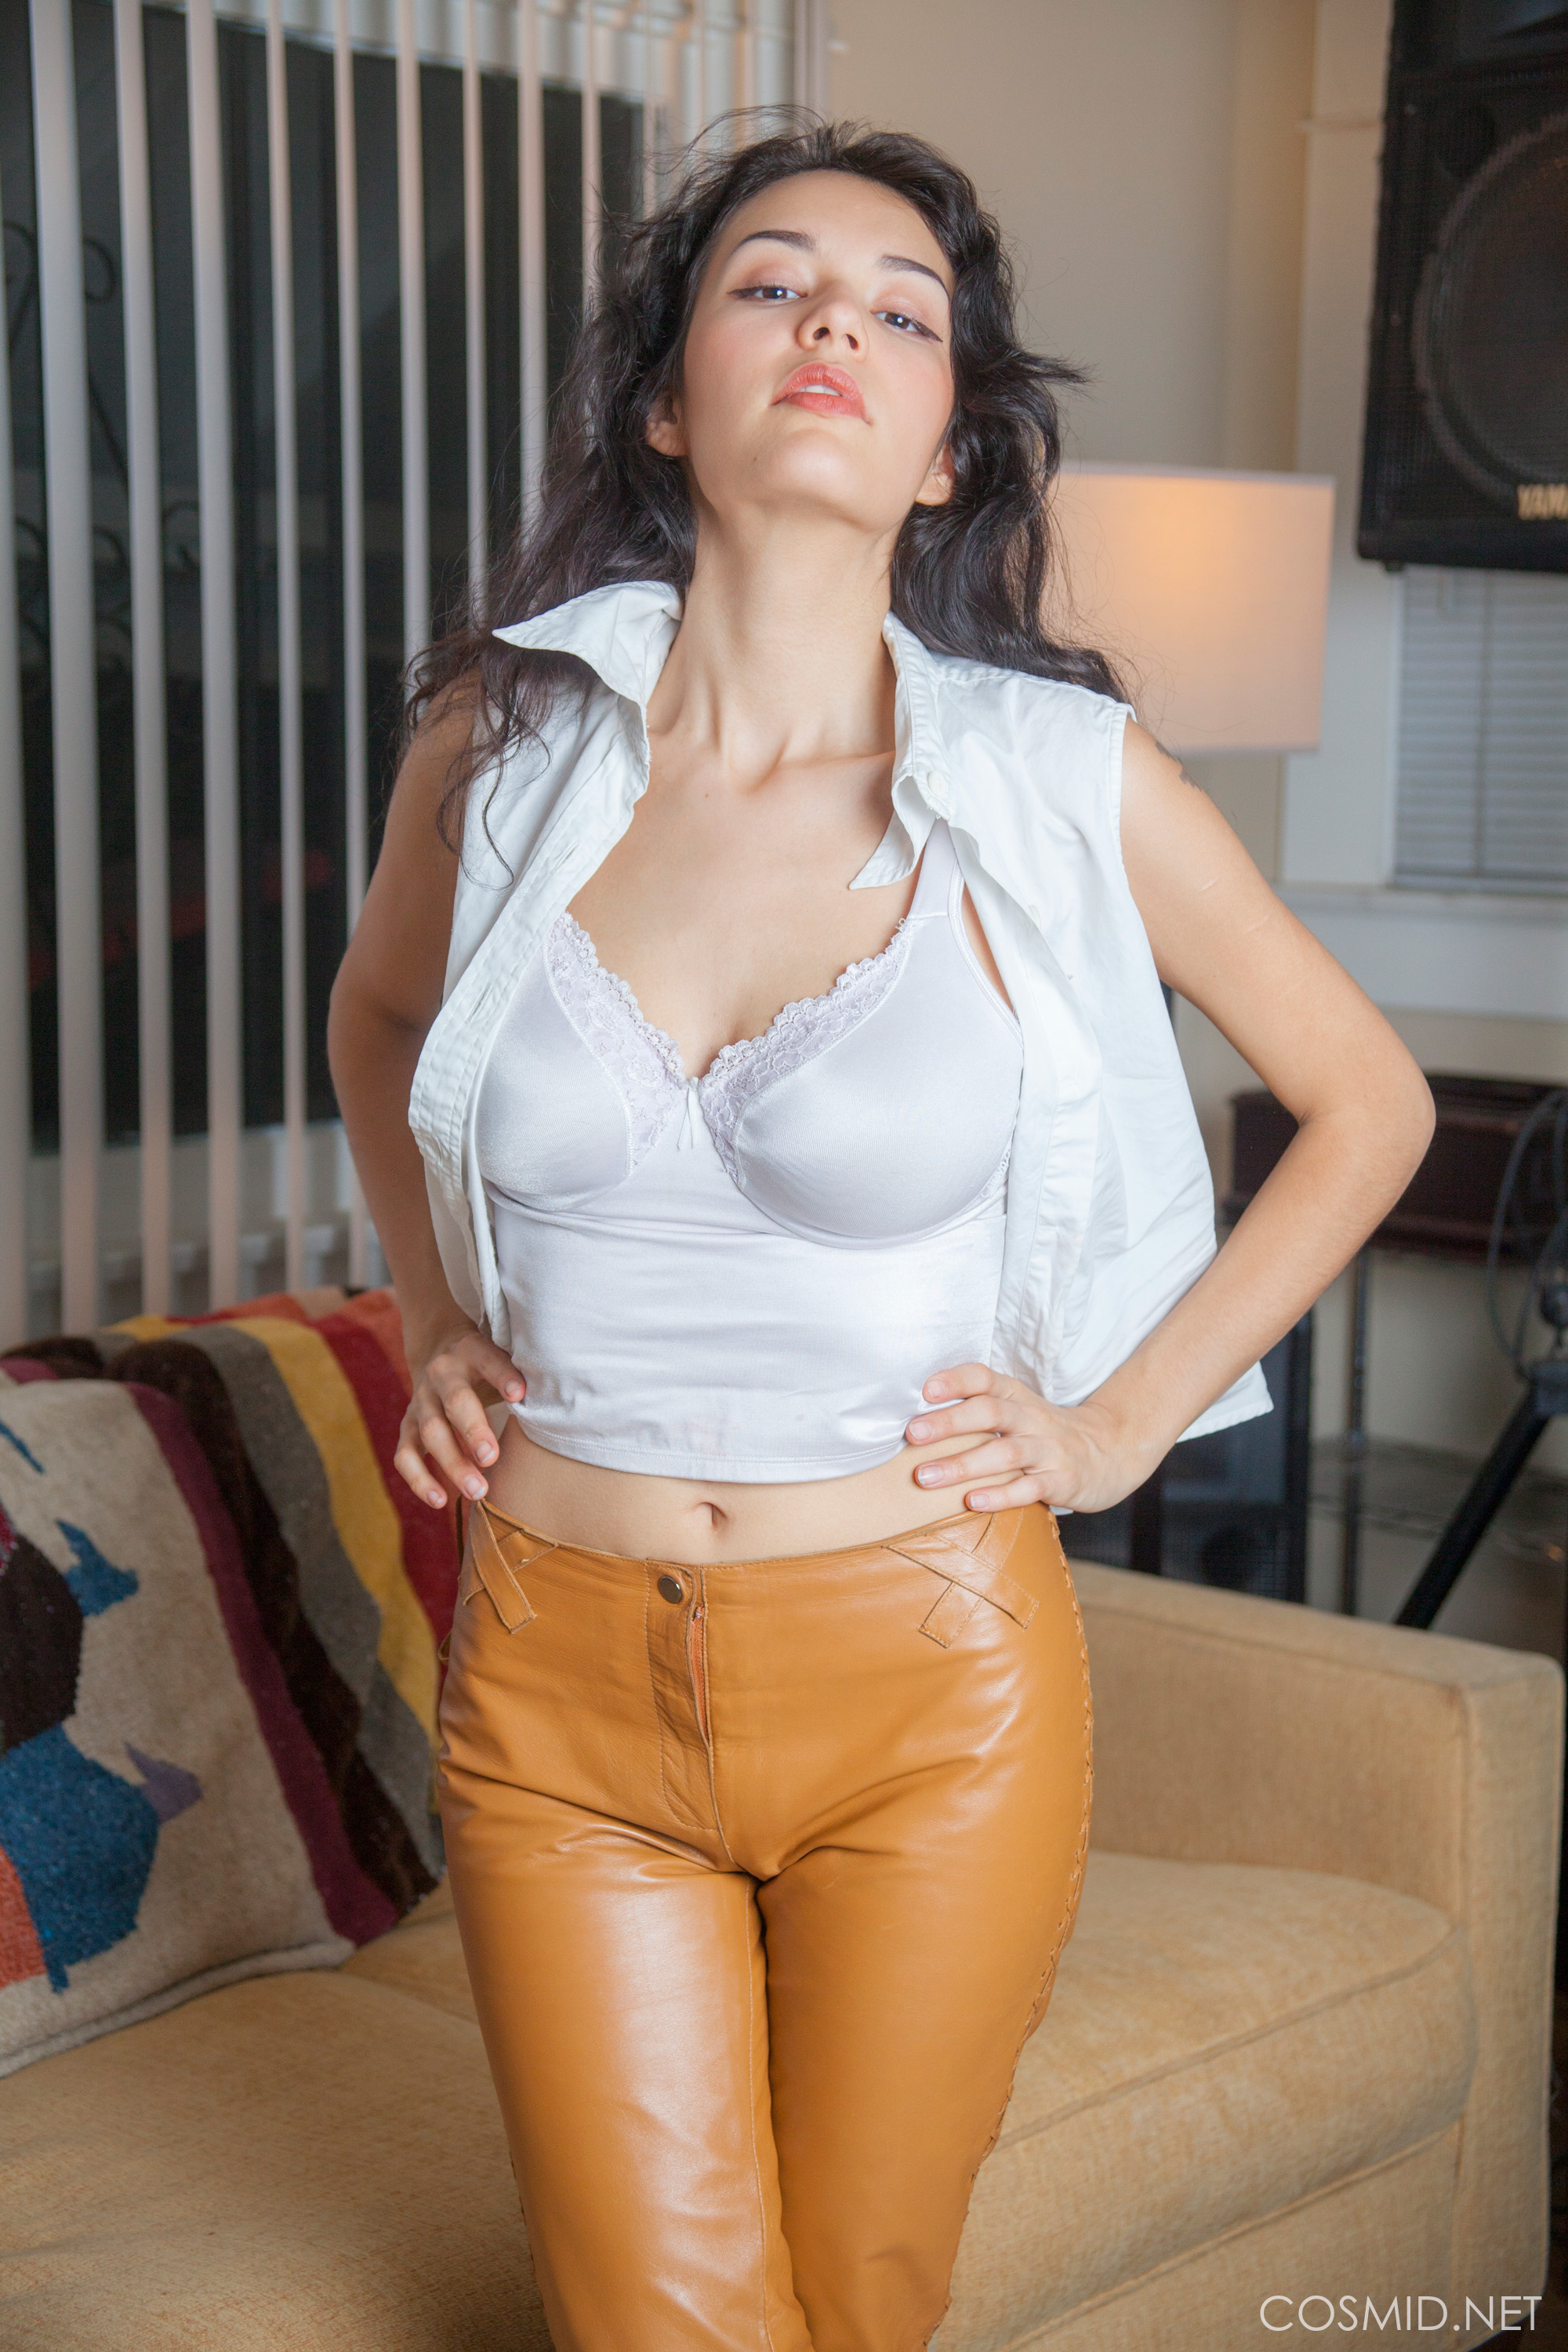 new cosmid model in wonderful leather trousers modelling her marvelous tits #2